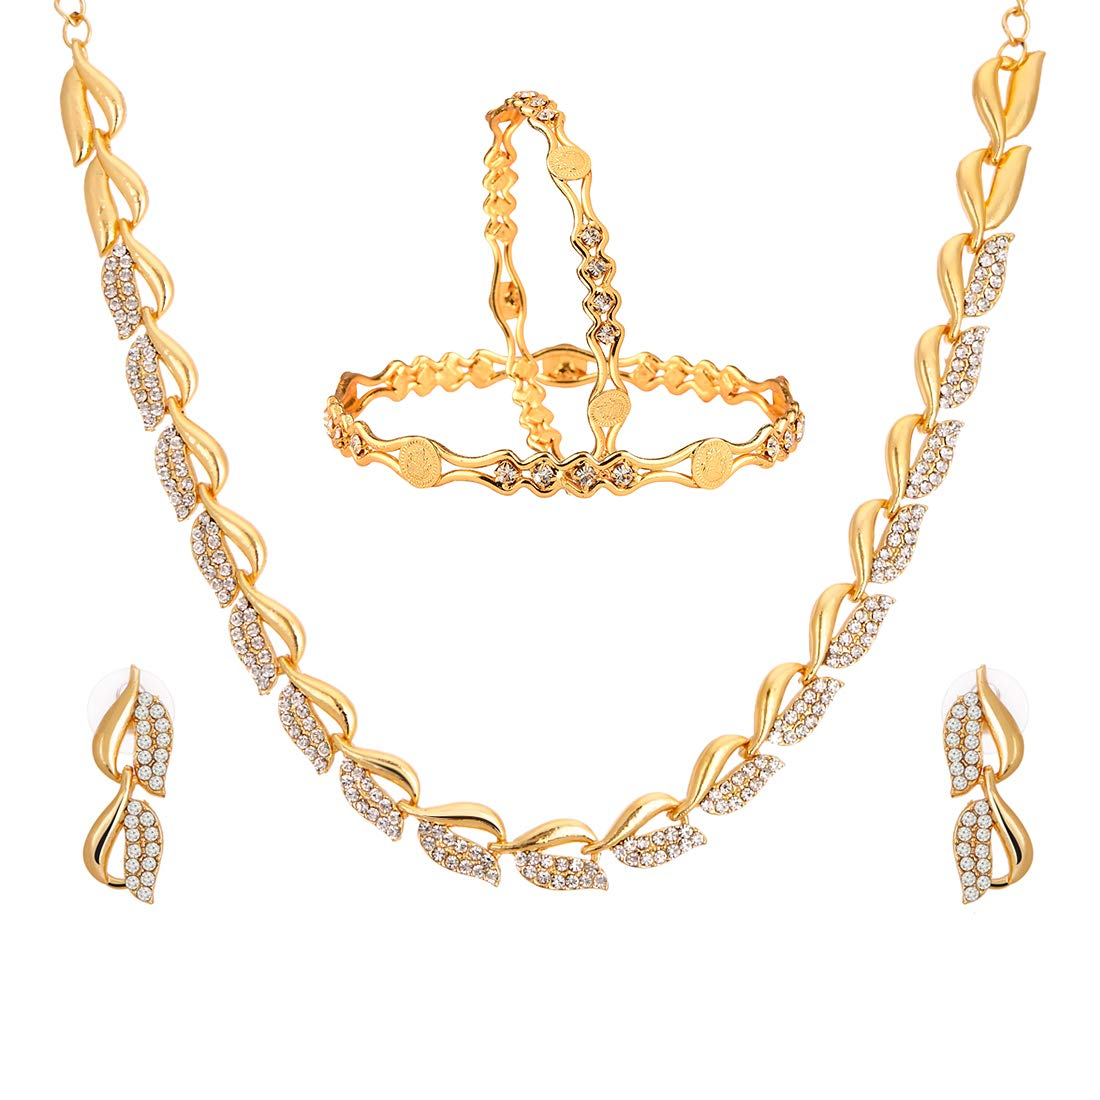 Buy Zeneme Fashion Jewellery American Diamond Designer Gold Plated